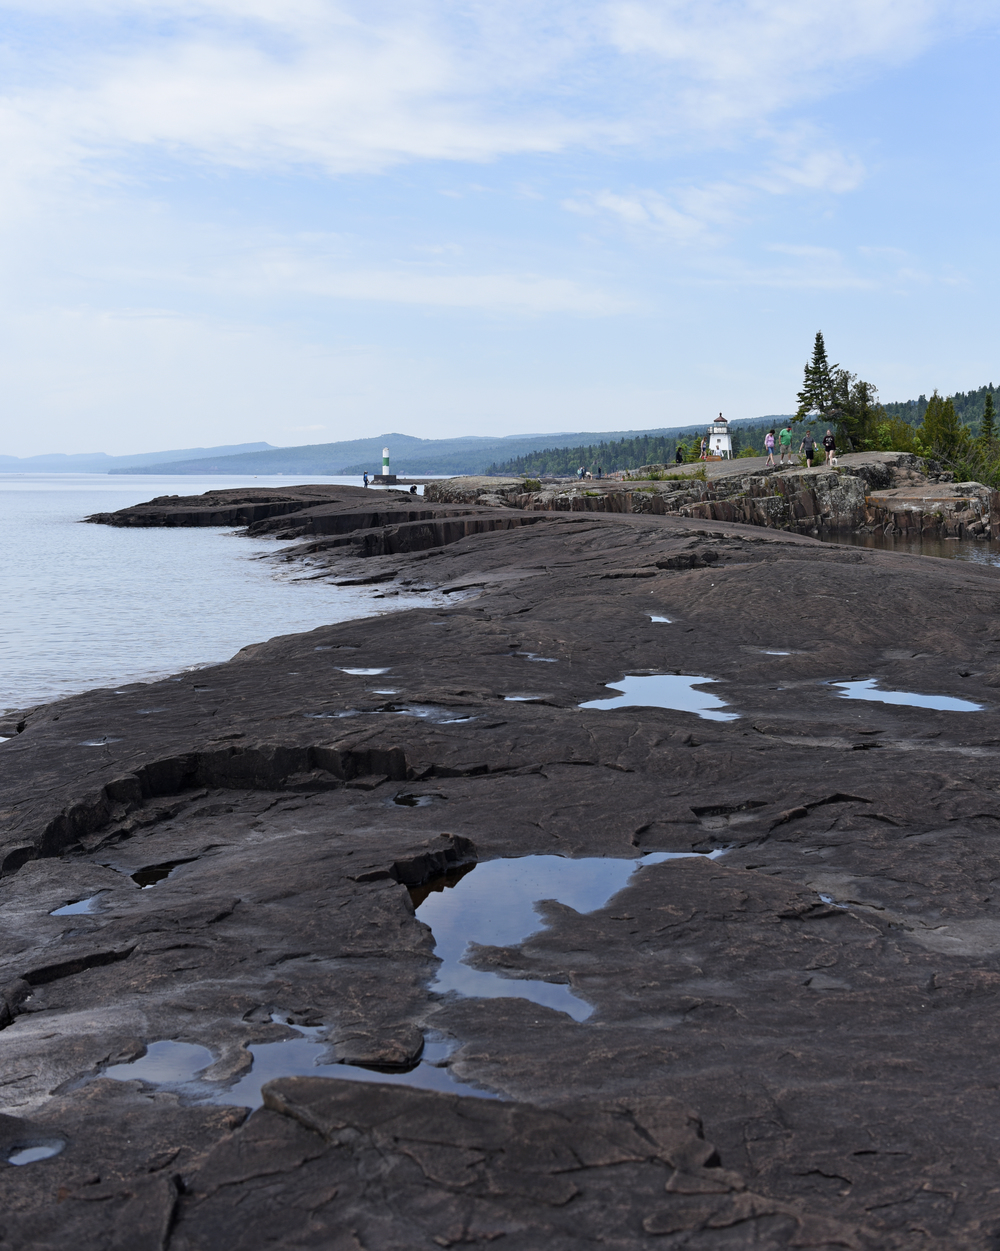 The Lake Superior shoreline in Grand Marais, Minn.